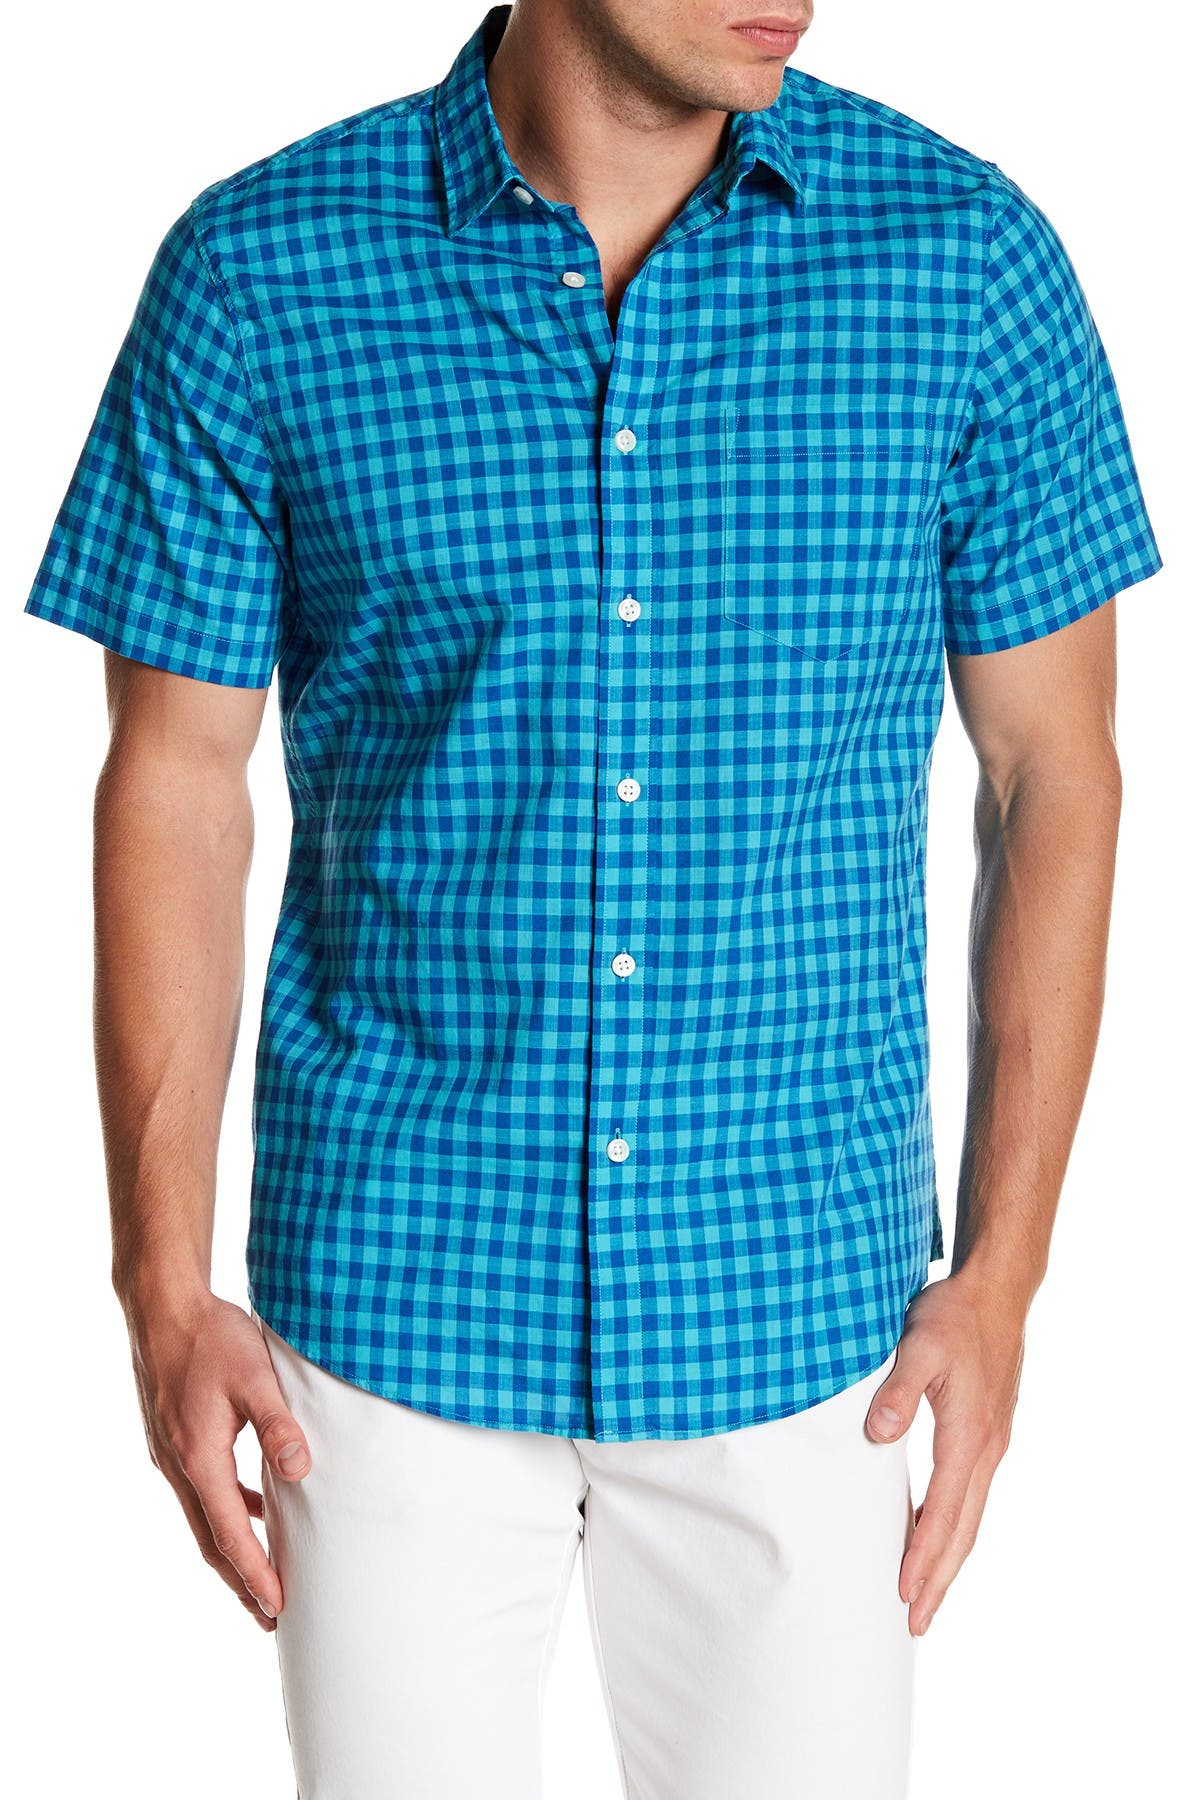 Image of 14th & Union Gingham Short Sleeve Trim Fit Shirt